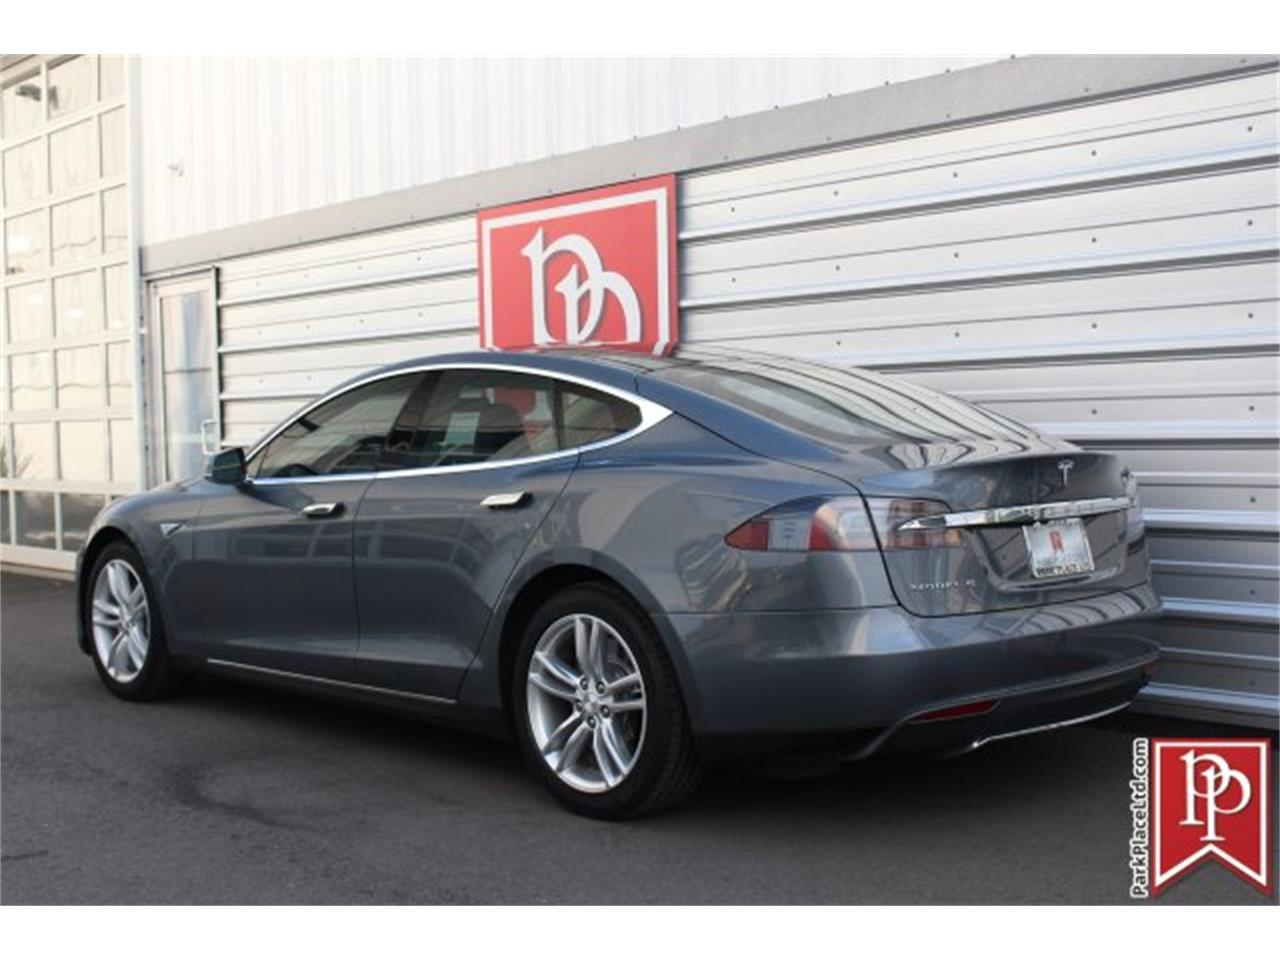 Large Picture of '14 Tesla Model S located in Bellevue Washington - $37,950.00 - OW52